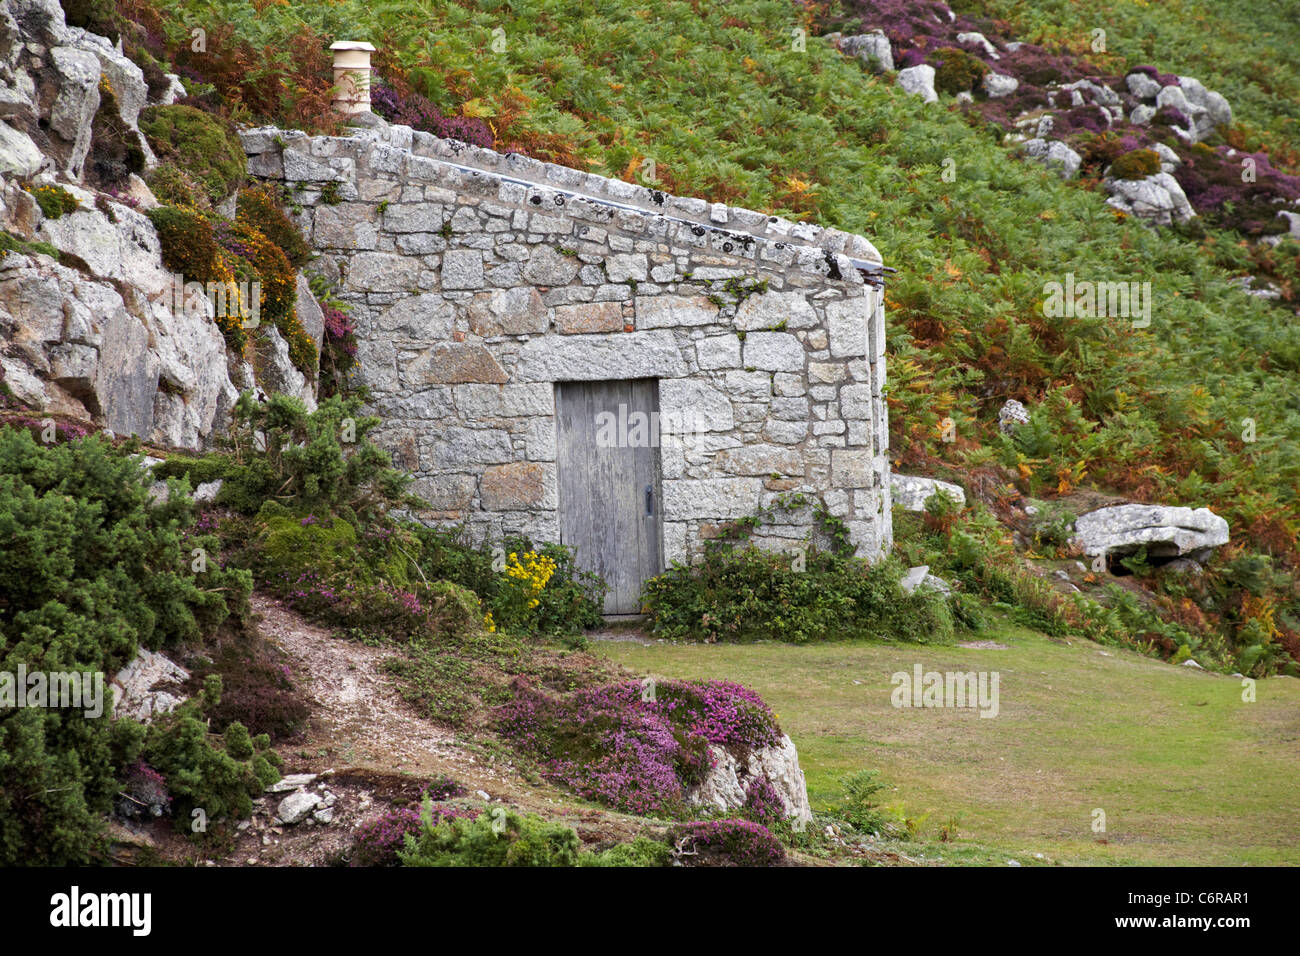 The granite quarries cottage on Lundy Island, Devon, England UK in August - Stock Image